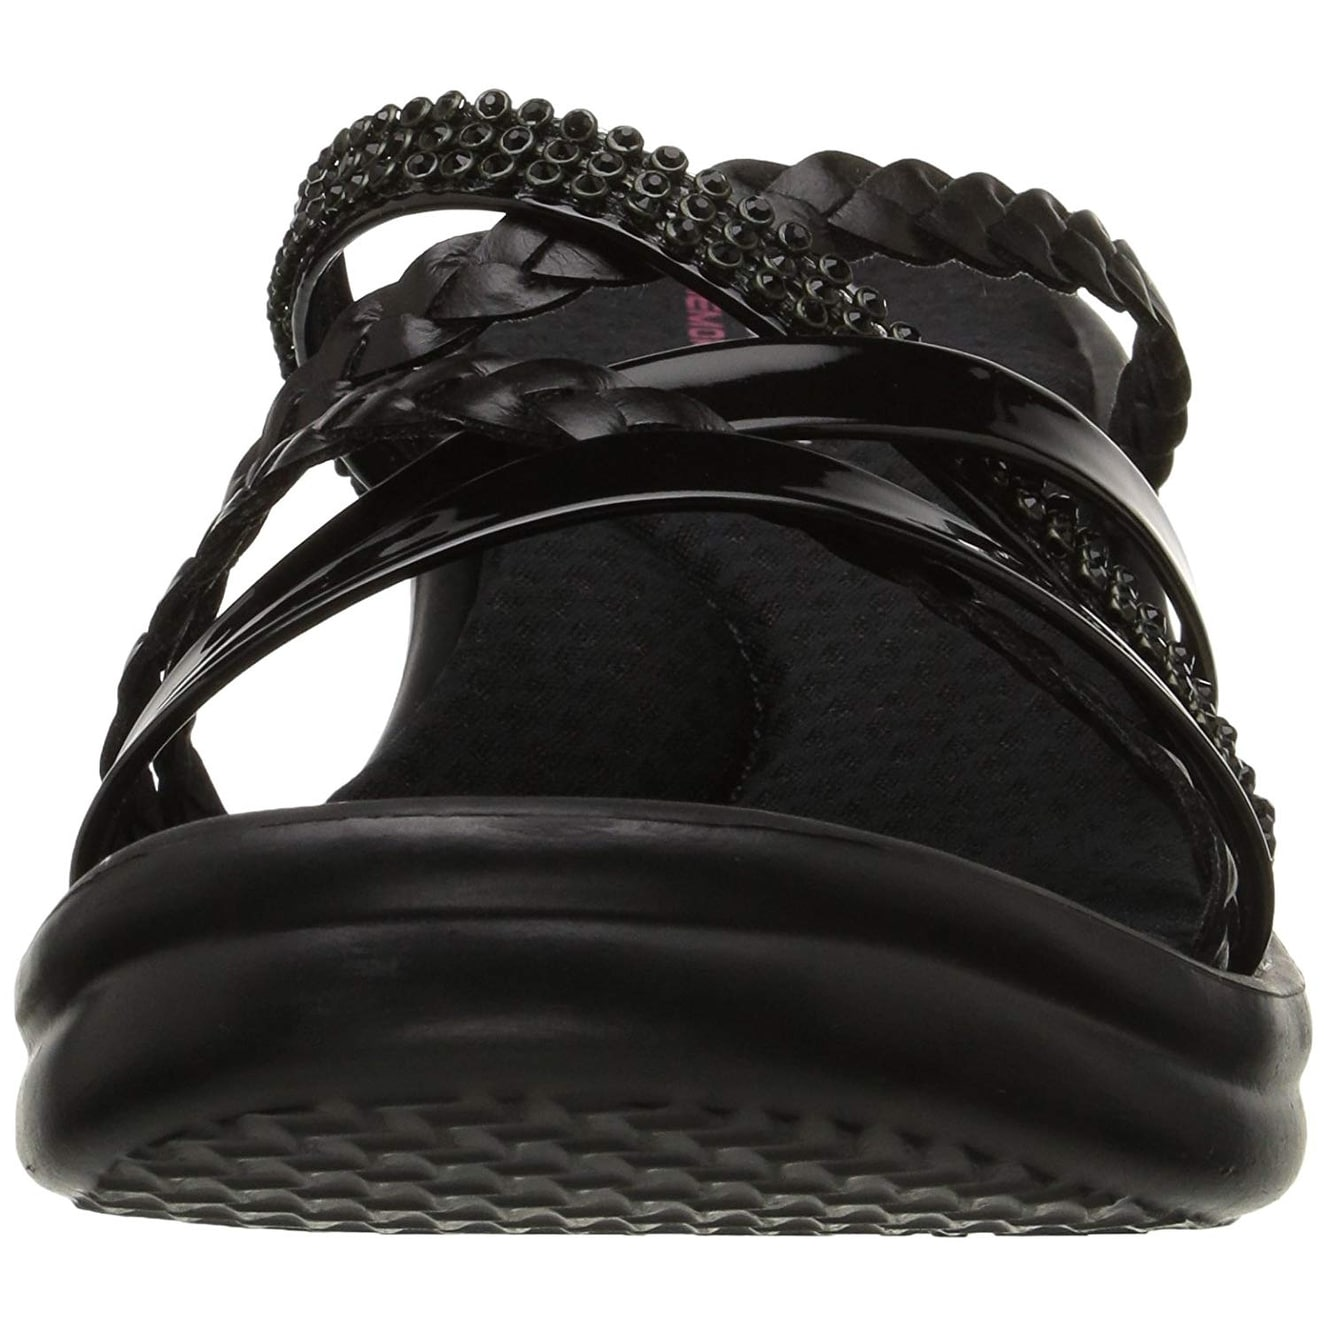 59067f644b9a Shop Skechers Cali Women s Rumblers-Social Butterfly Wedge Sandal - 7 -  Free Shipping On Orders Over  45 - Overstock - 23446762